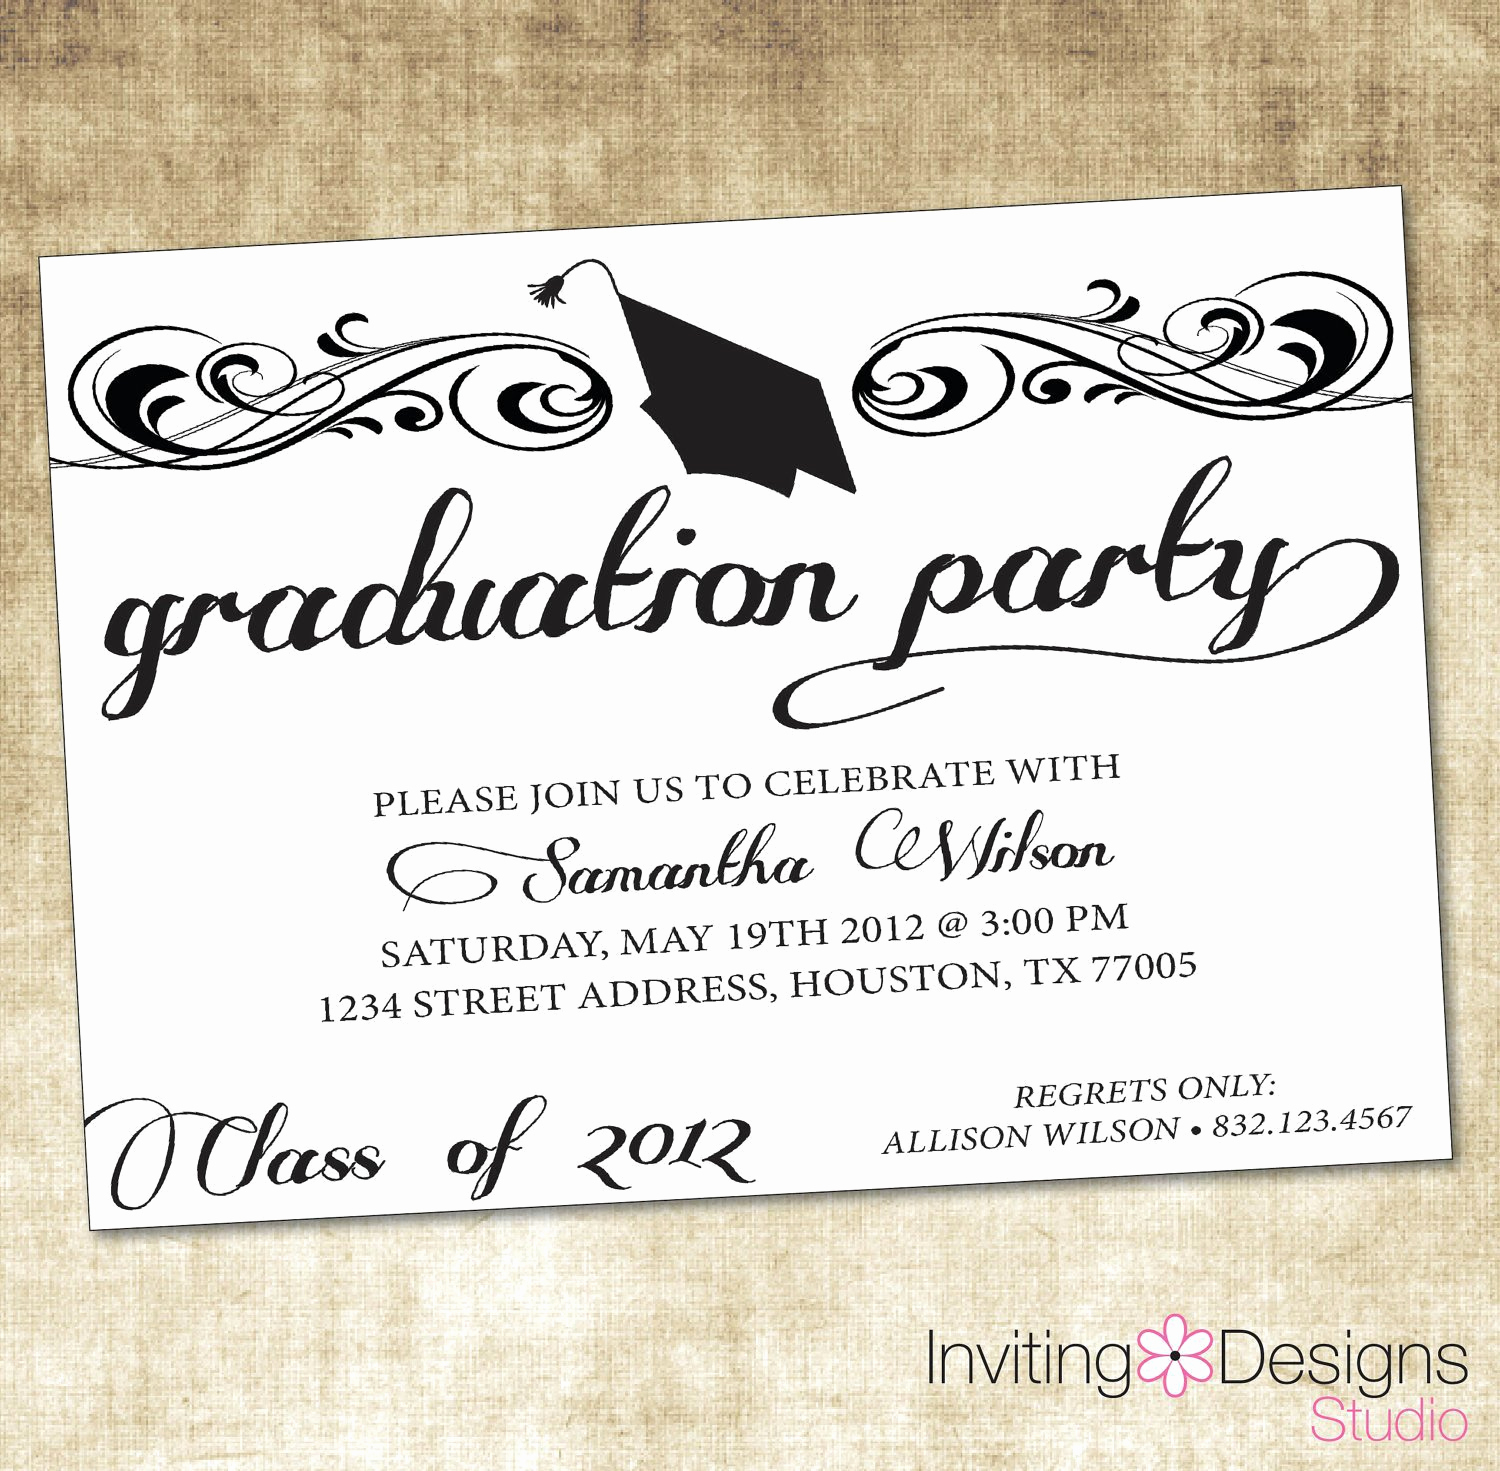 Graduation Open House Invitation Templates Best Of Free Graduation Invitation Templates Free Graduation